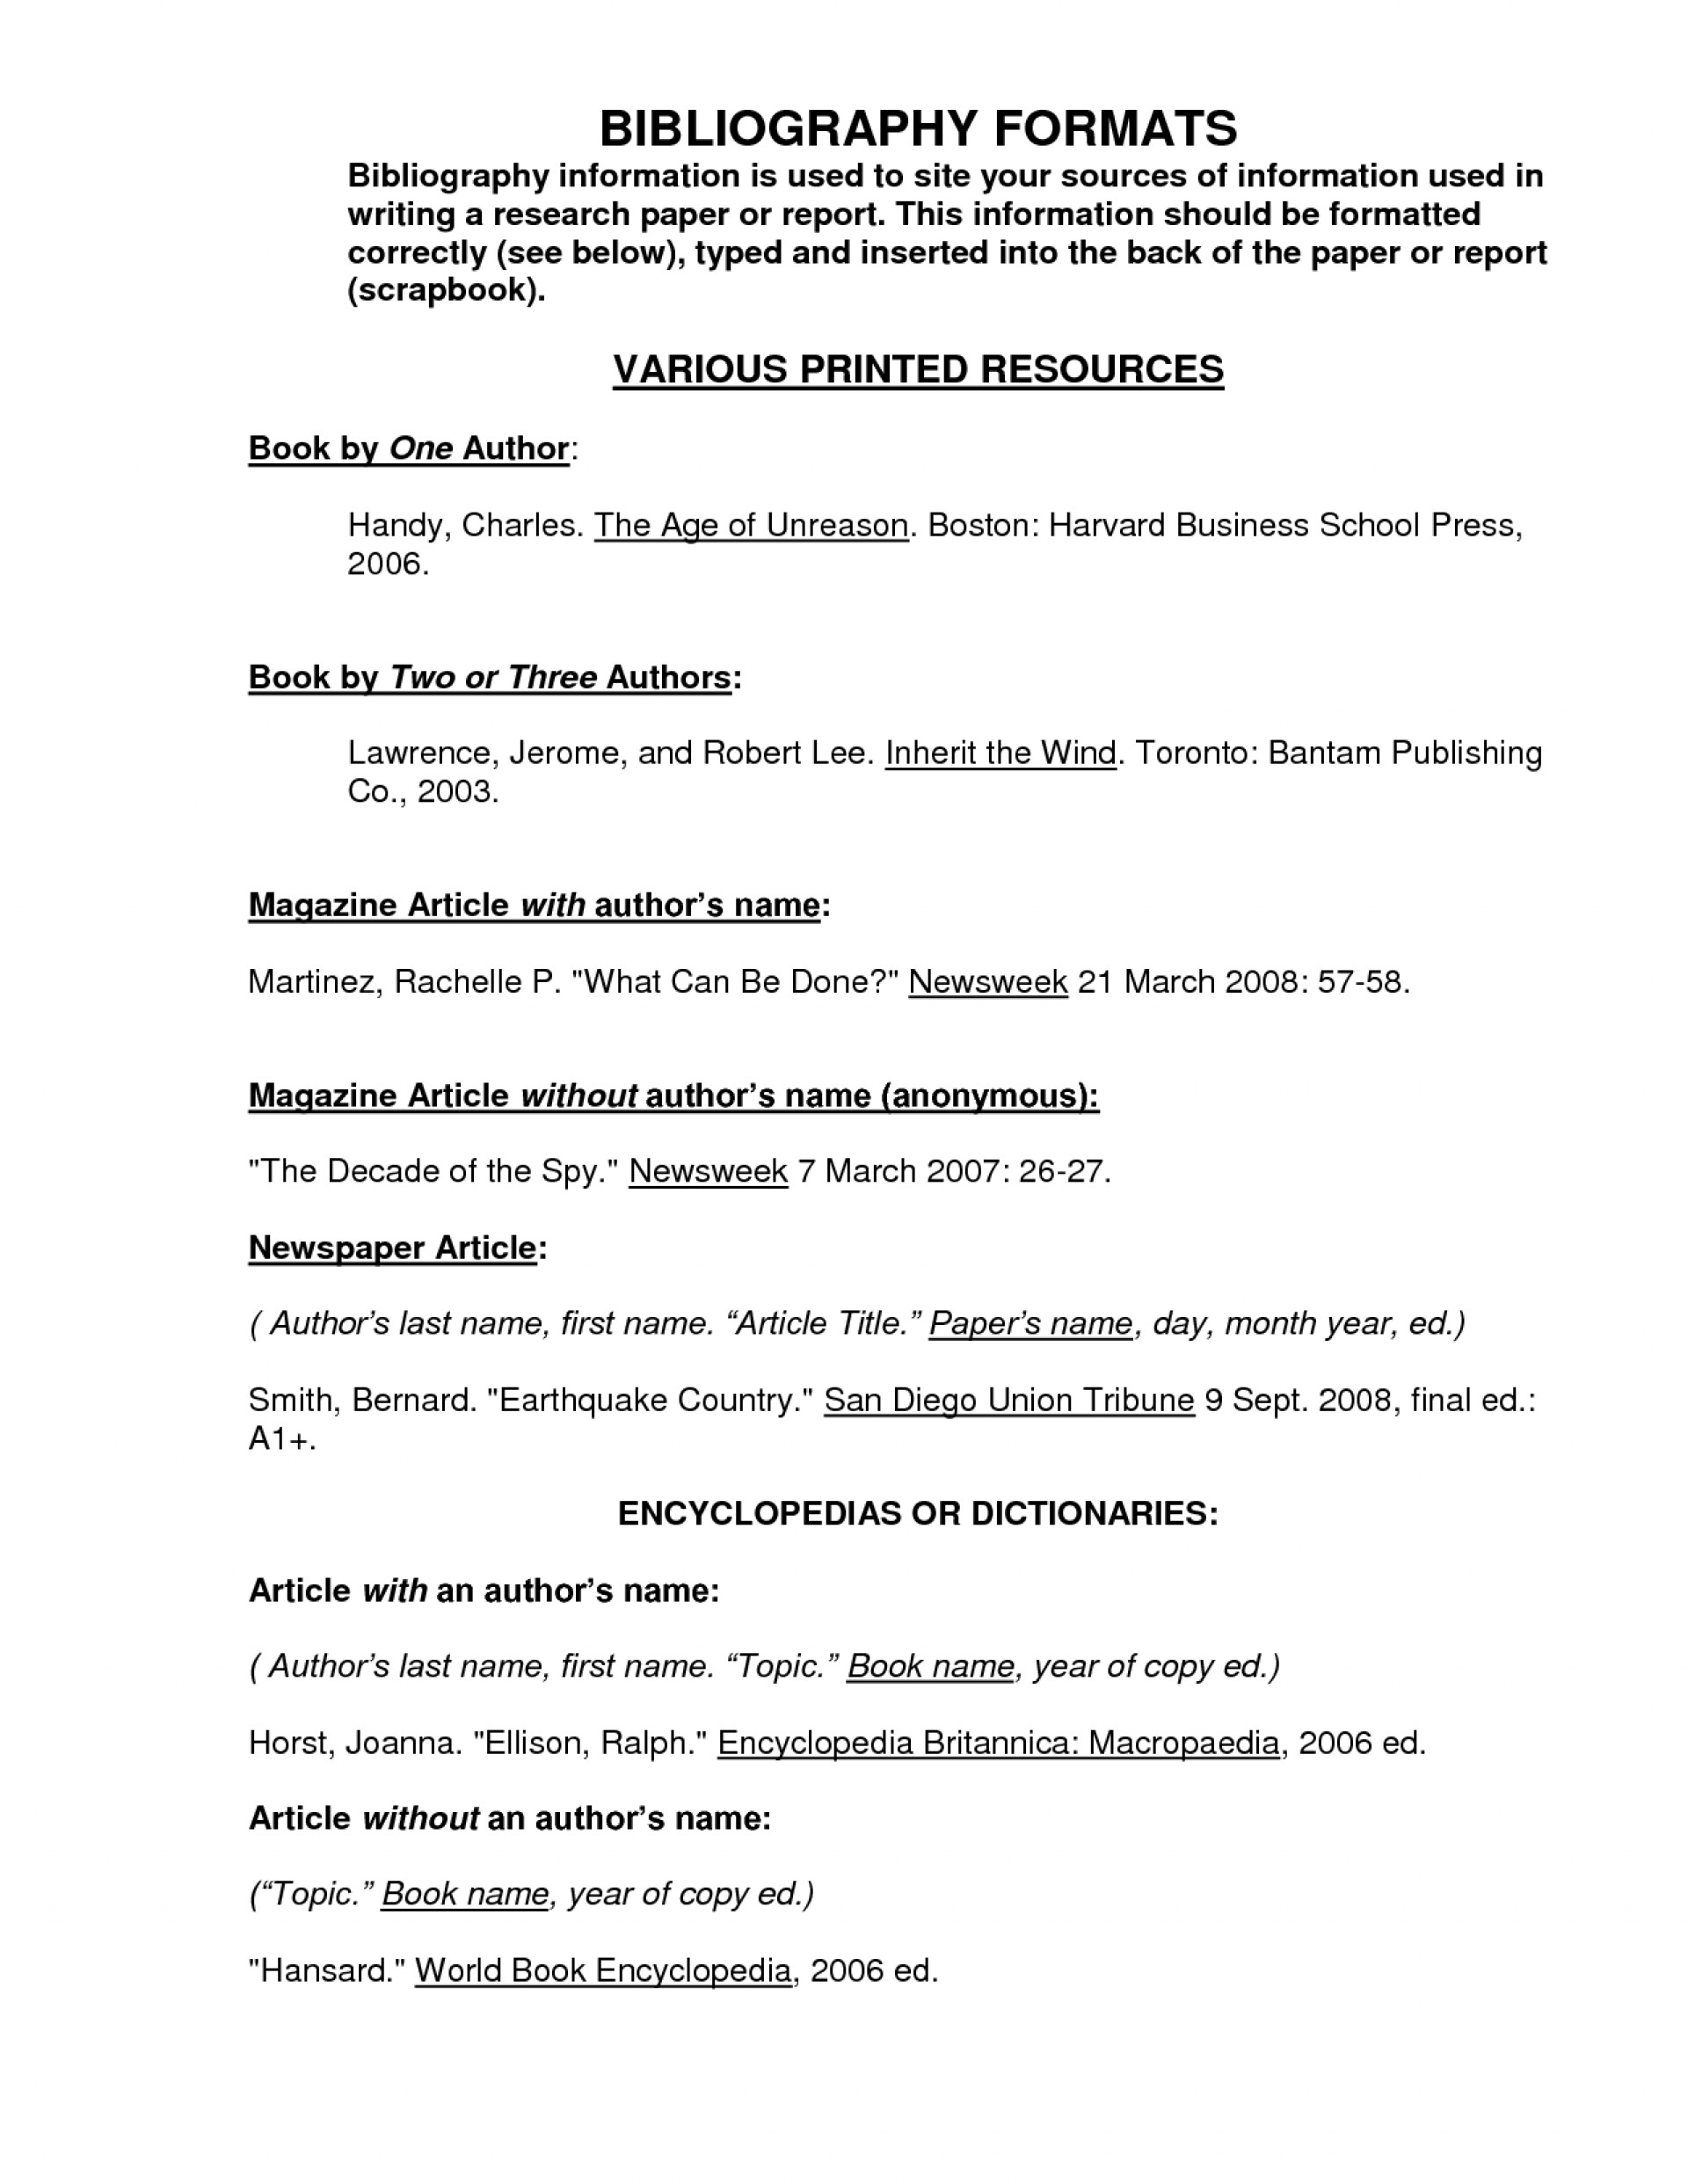 001 Research Paper Bibliography Format 82583 For Awesome References Layout Of A Apa Style Outline Example 1920